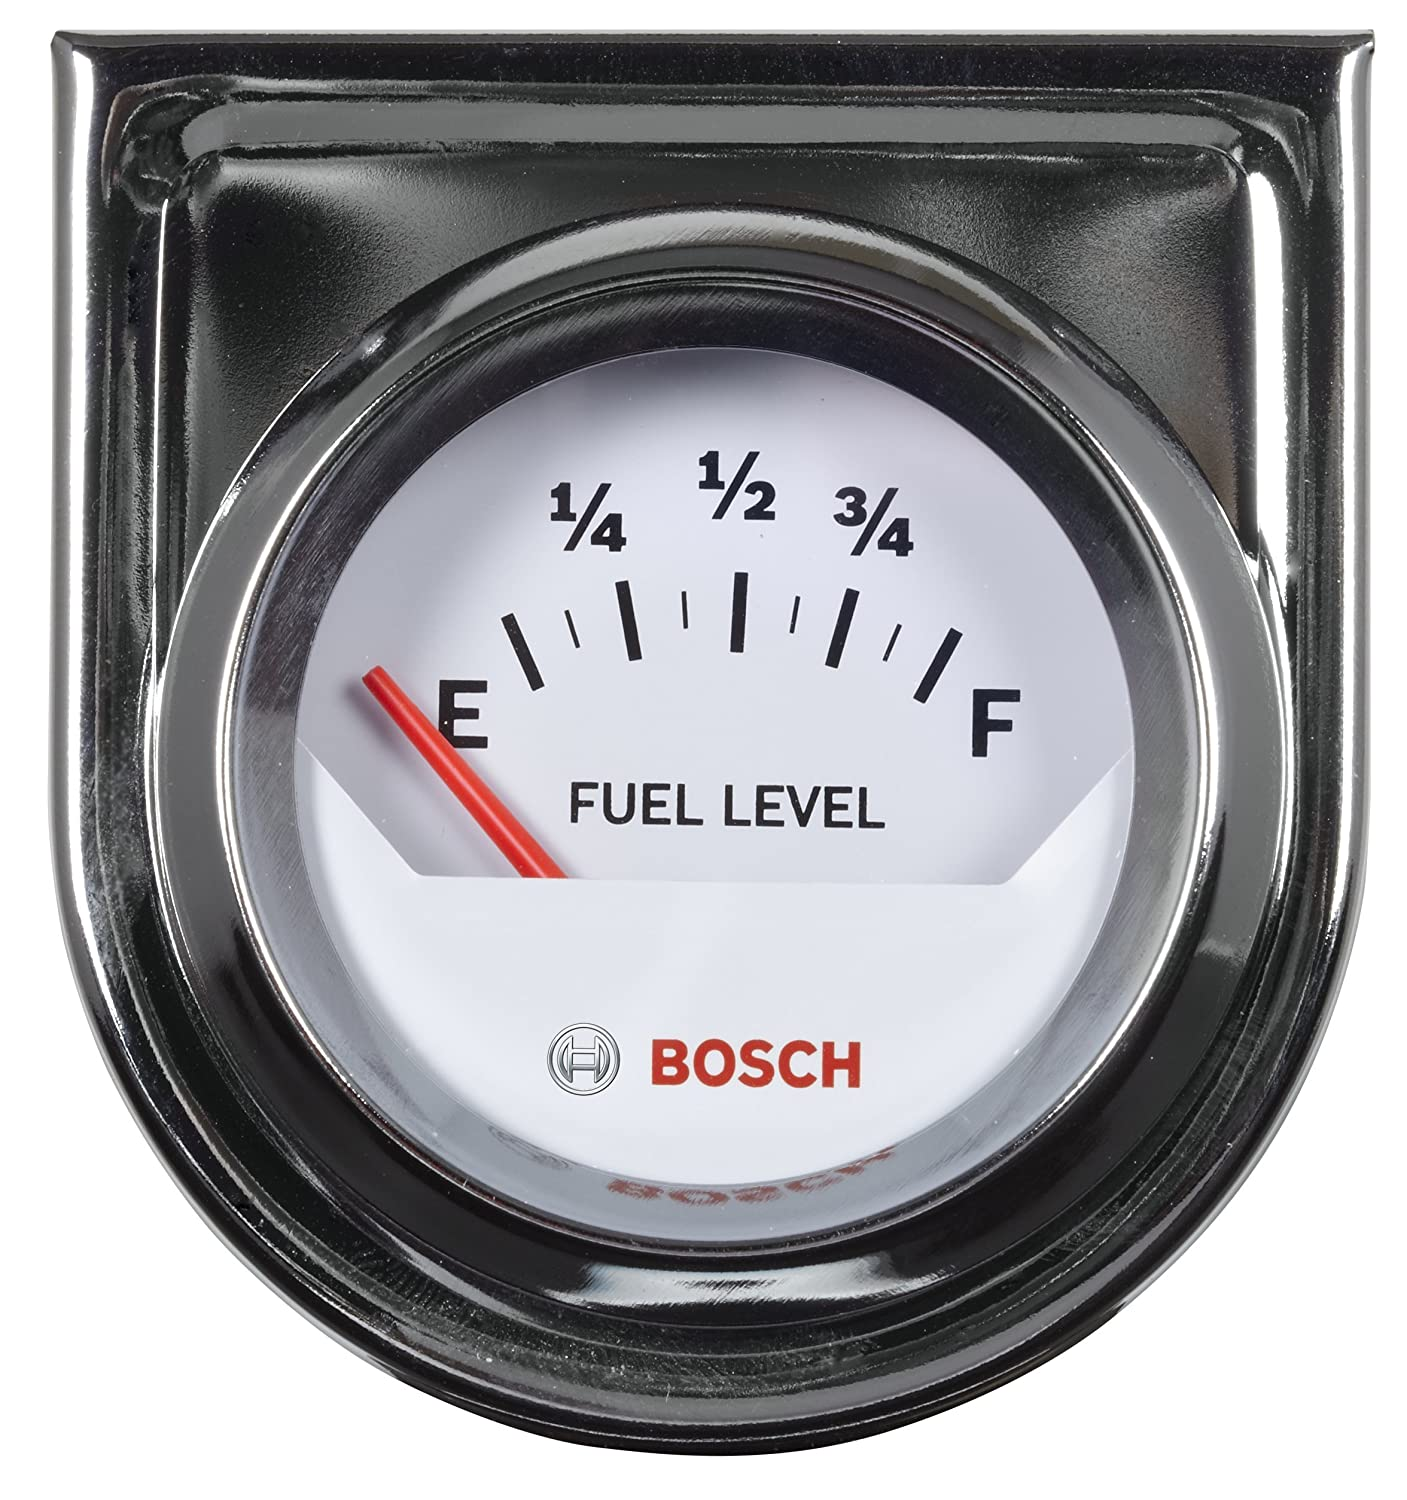 Bosch Sp0f000048 Style Line 2 Electrical Fuel Level Tachometer Wiring Gauge White Dial Face Chrome Bezel Automotive